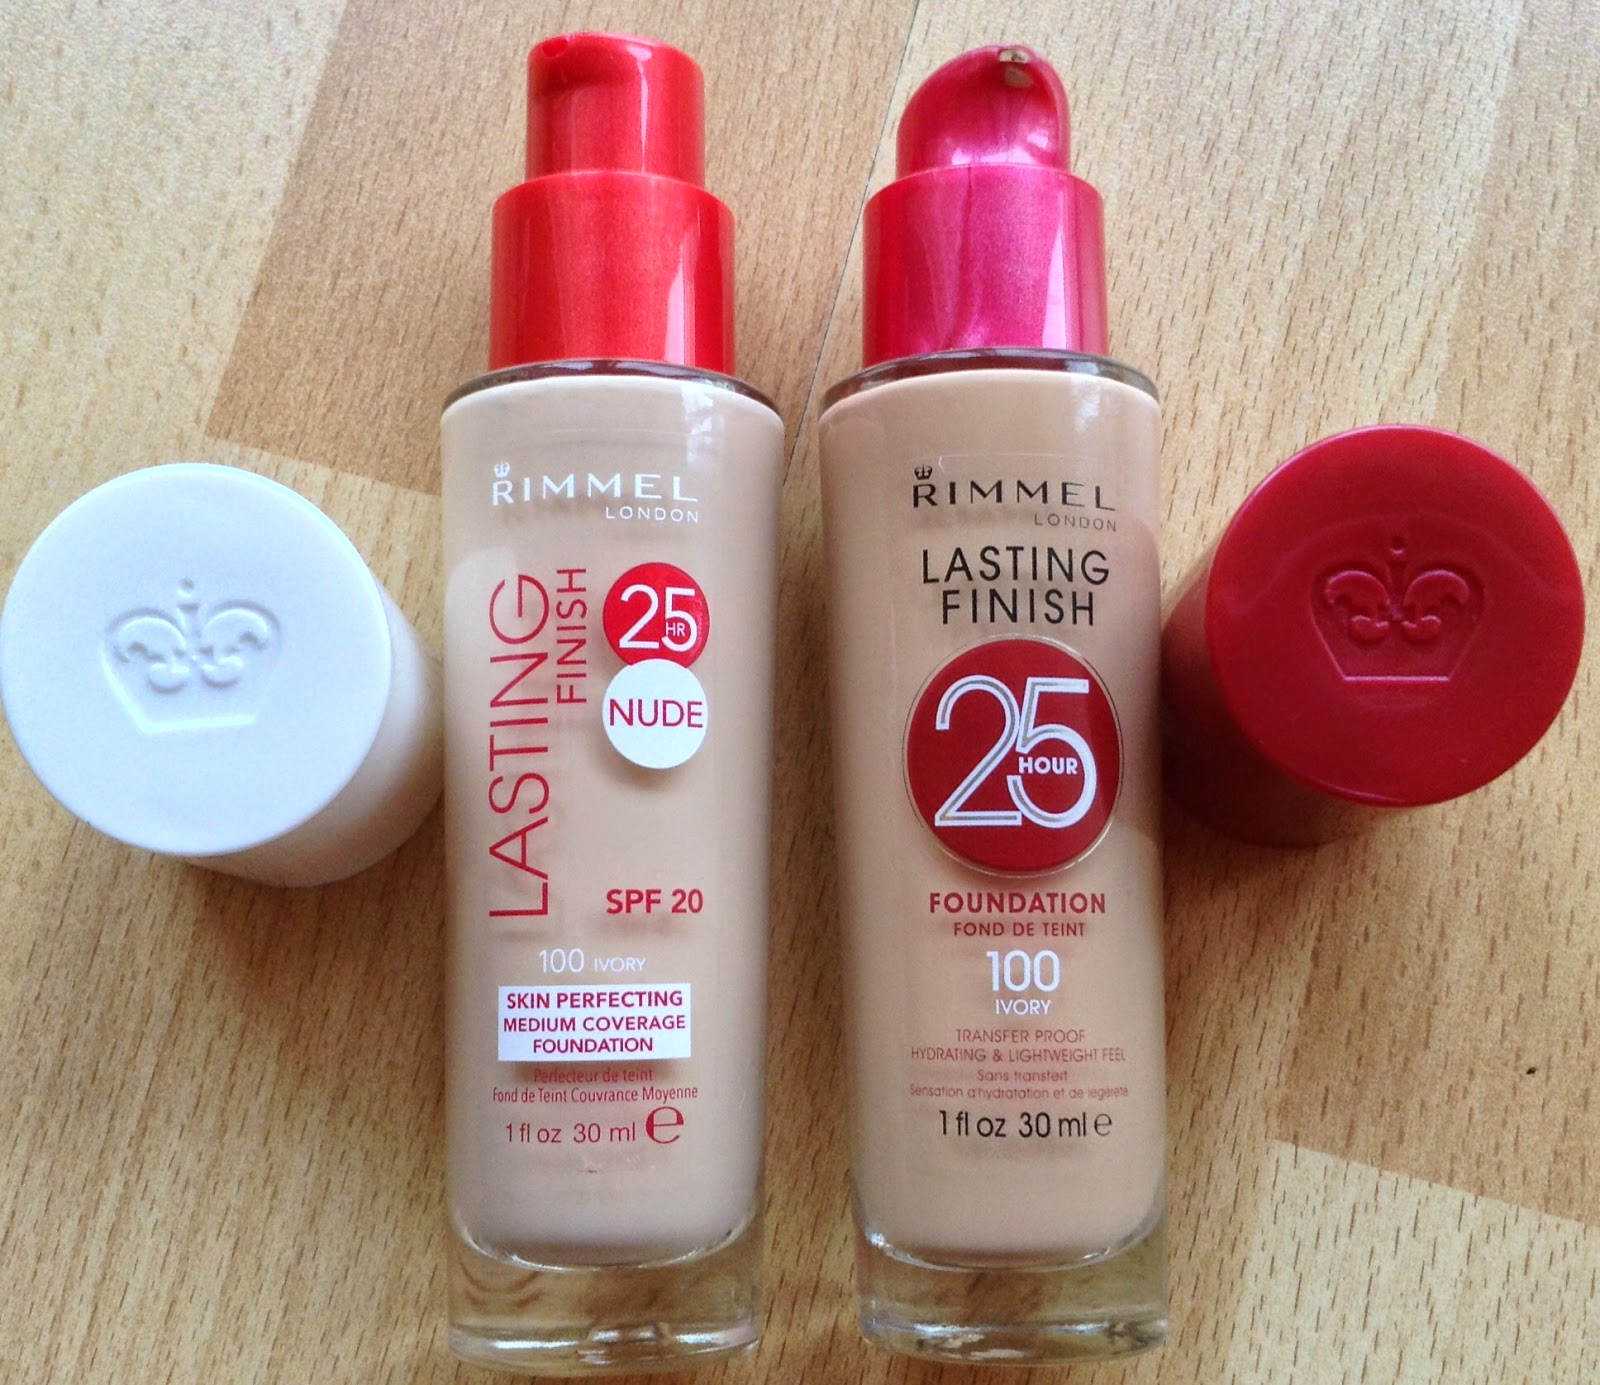 Rimmel 25HR Lasting Finish NUDE Foundation - Review, Swatches and Comparison